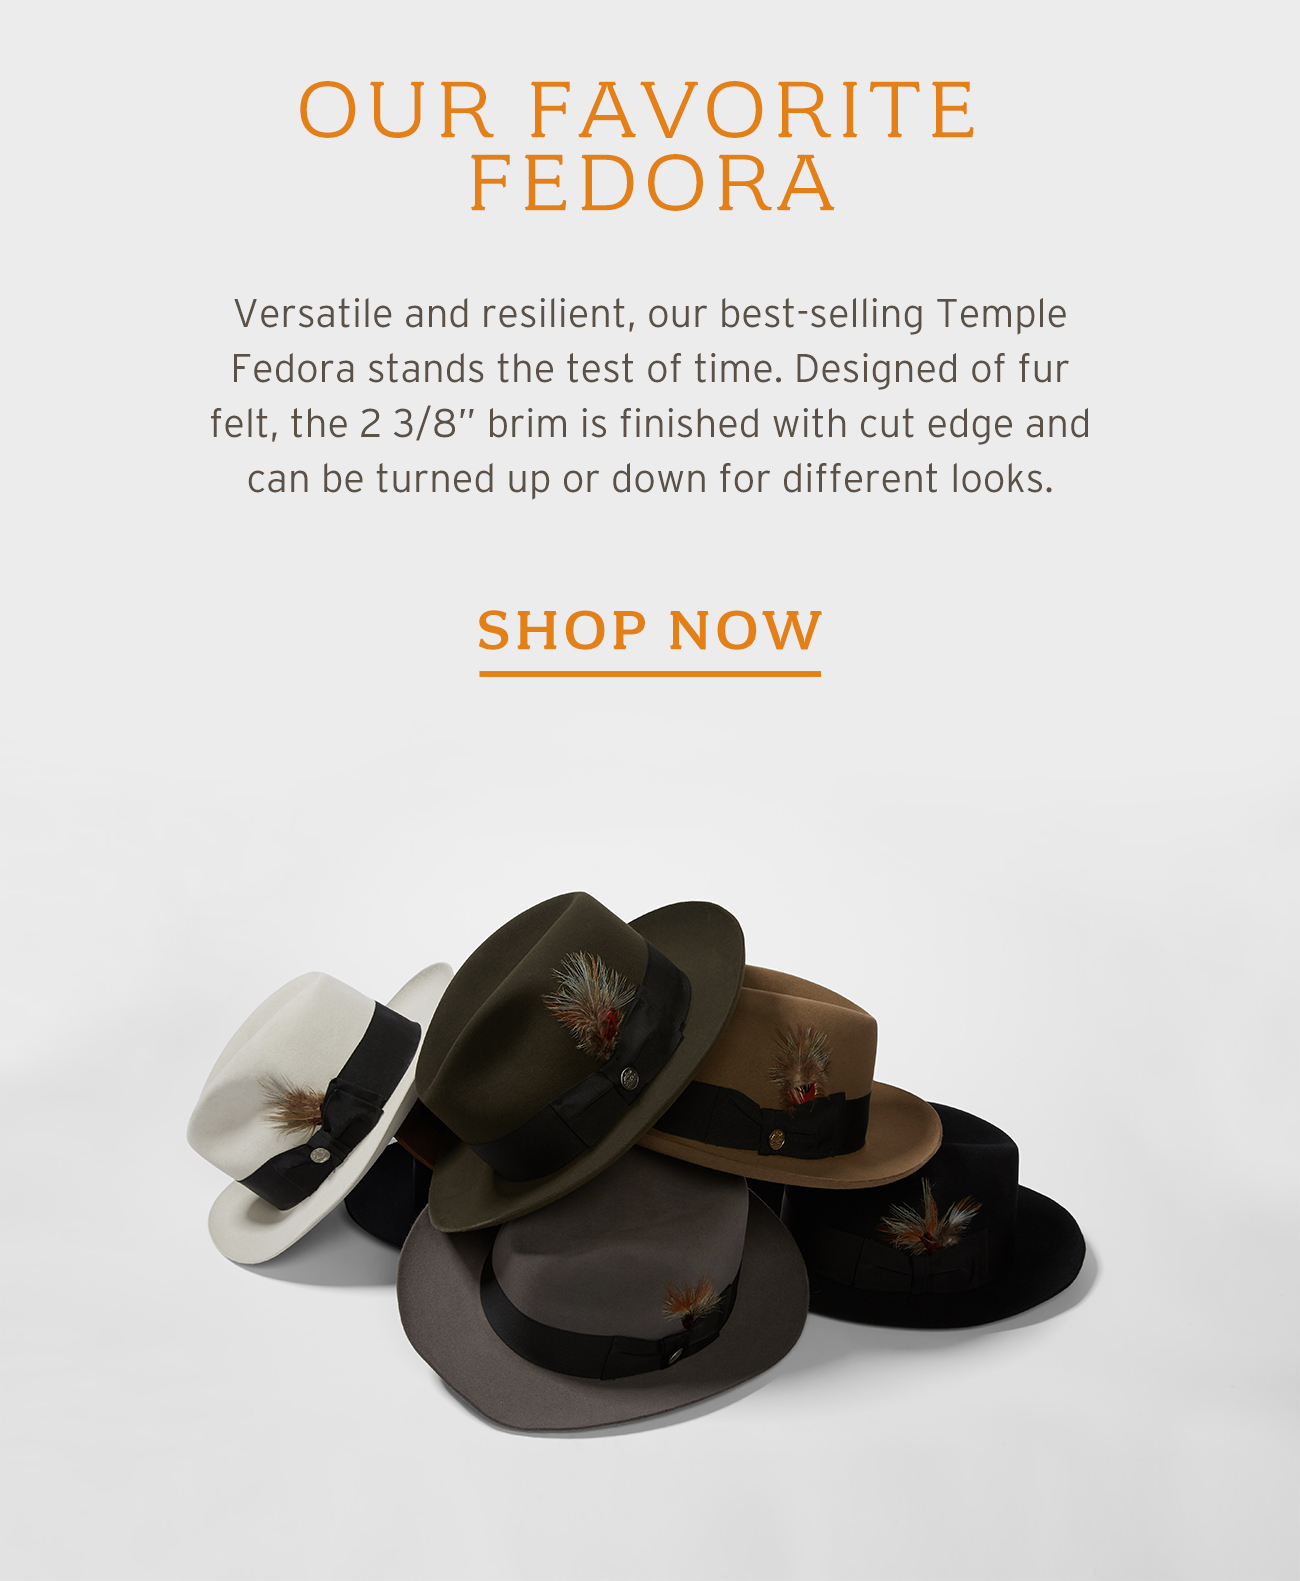 Our Favorite Fedora [SHOP NOW]